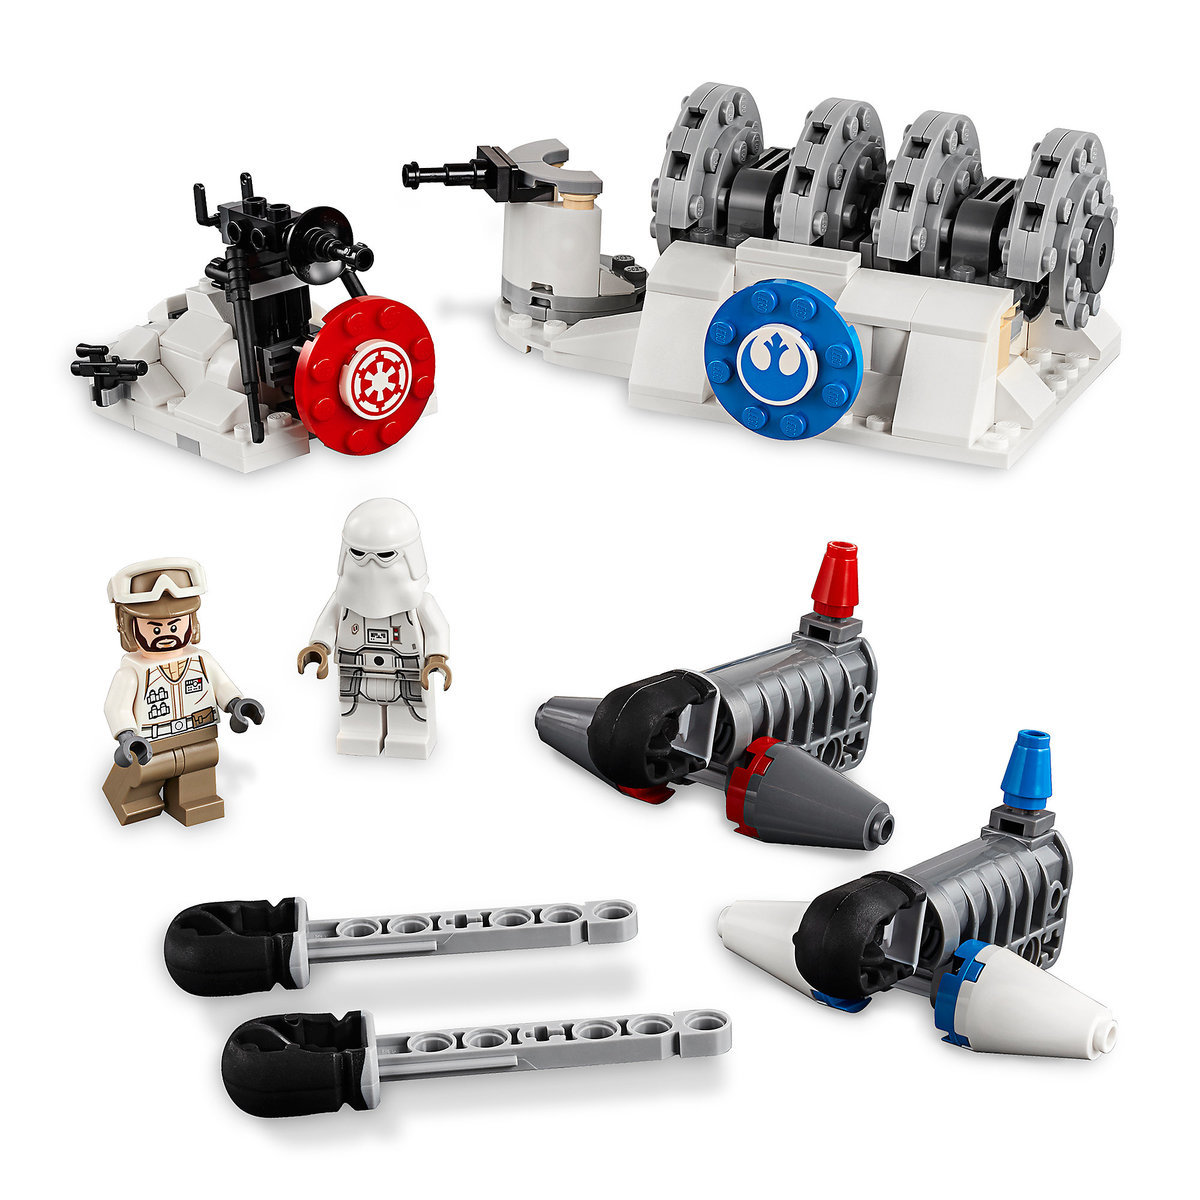 Action Battle Hoth Generator Attack Play Set by LEGO - Star Wars: The  Empire Strikes Back